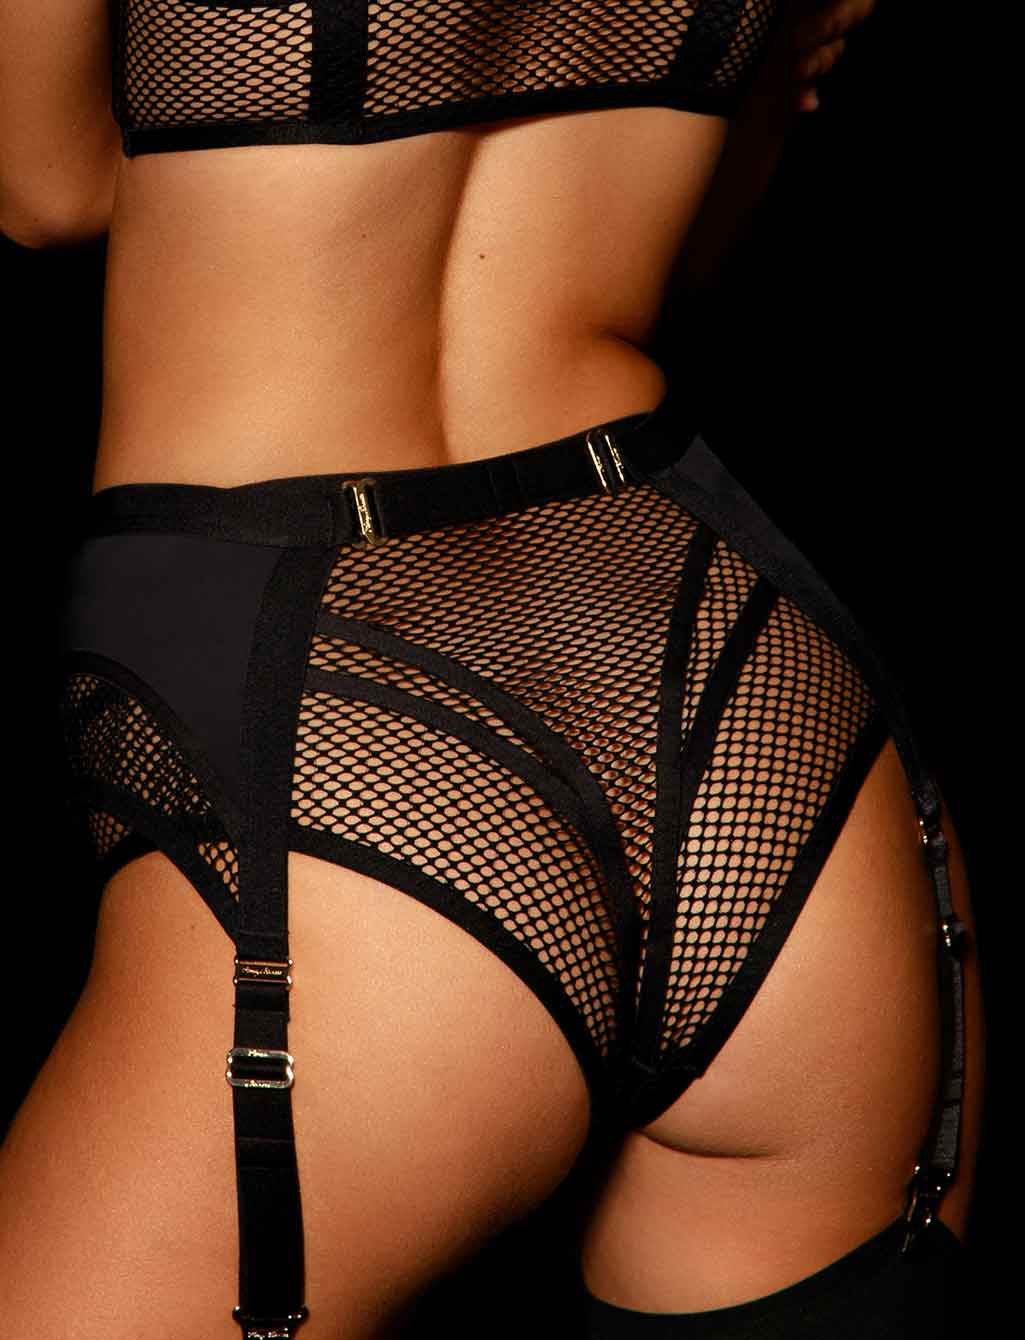 Tash Black Garter Belt - Shop Lingerie | Honey Birdette